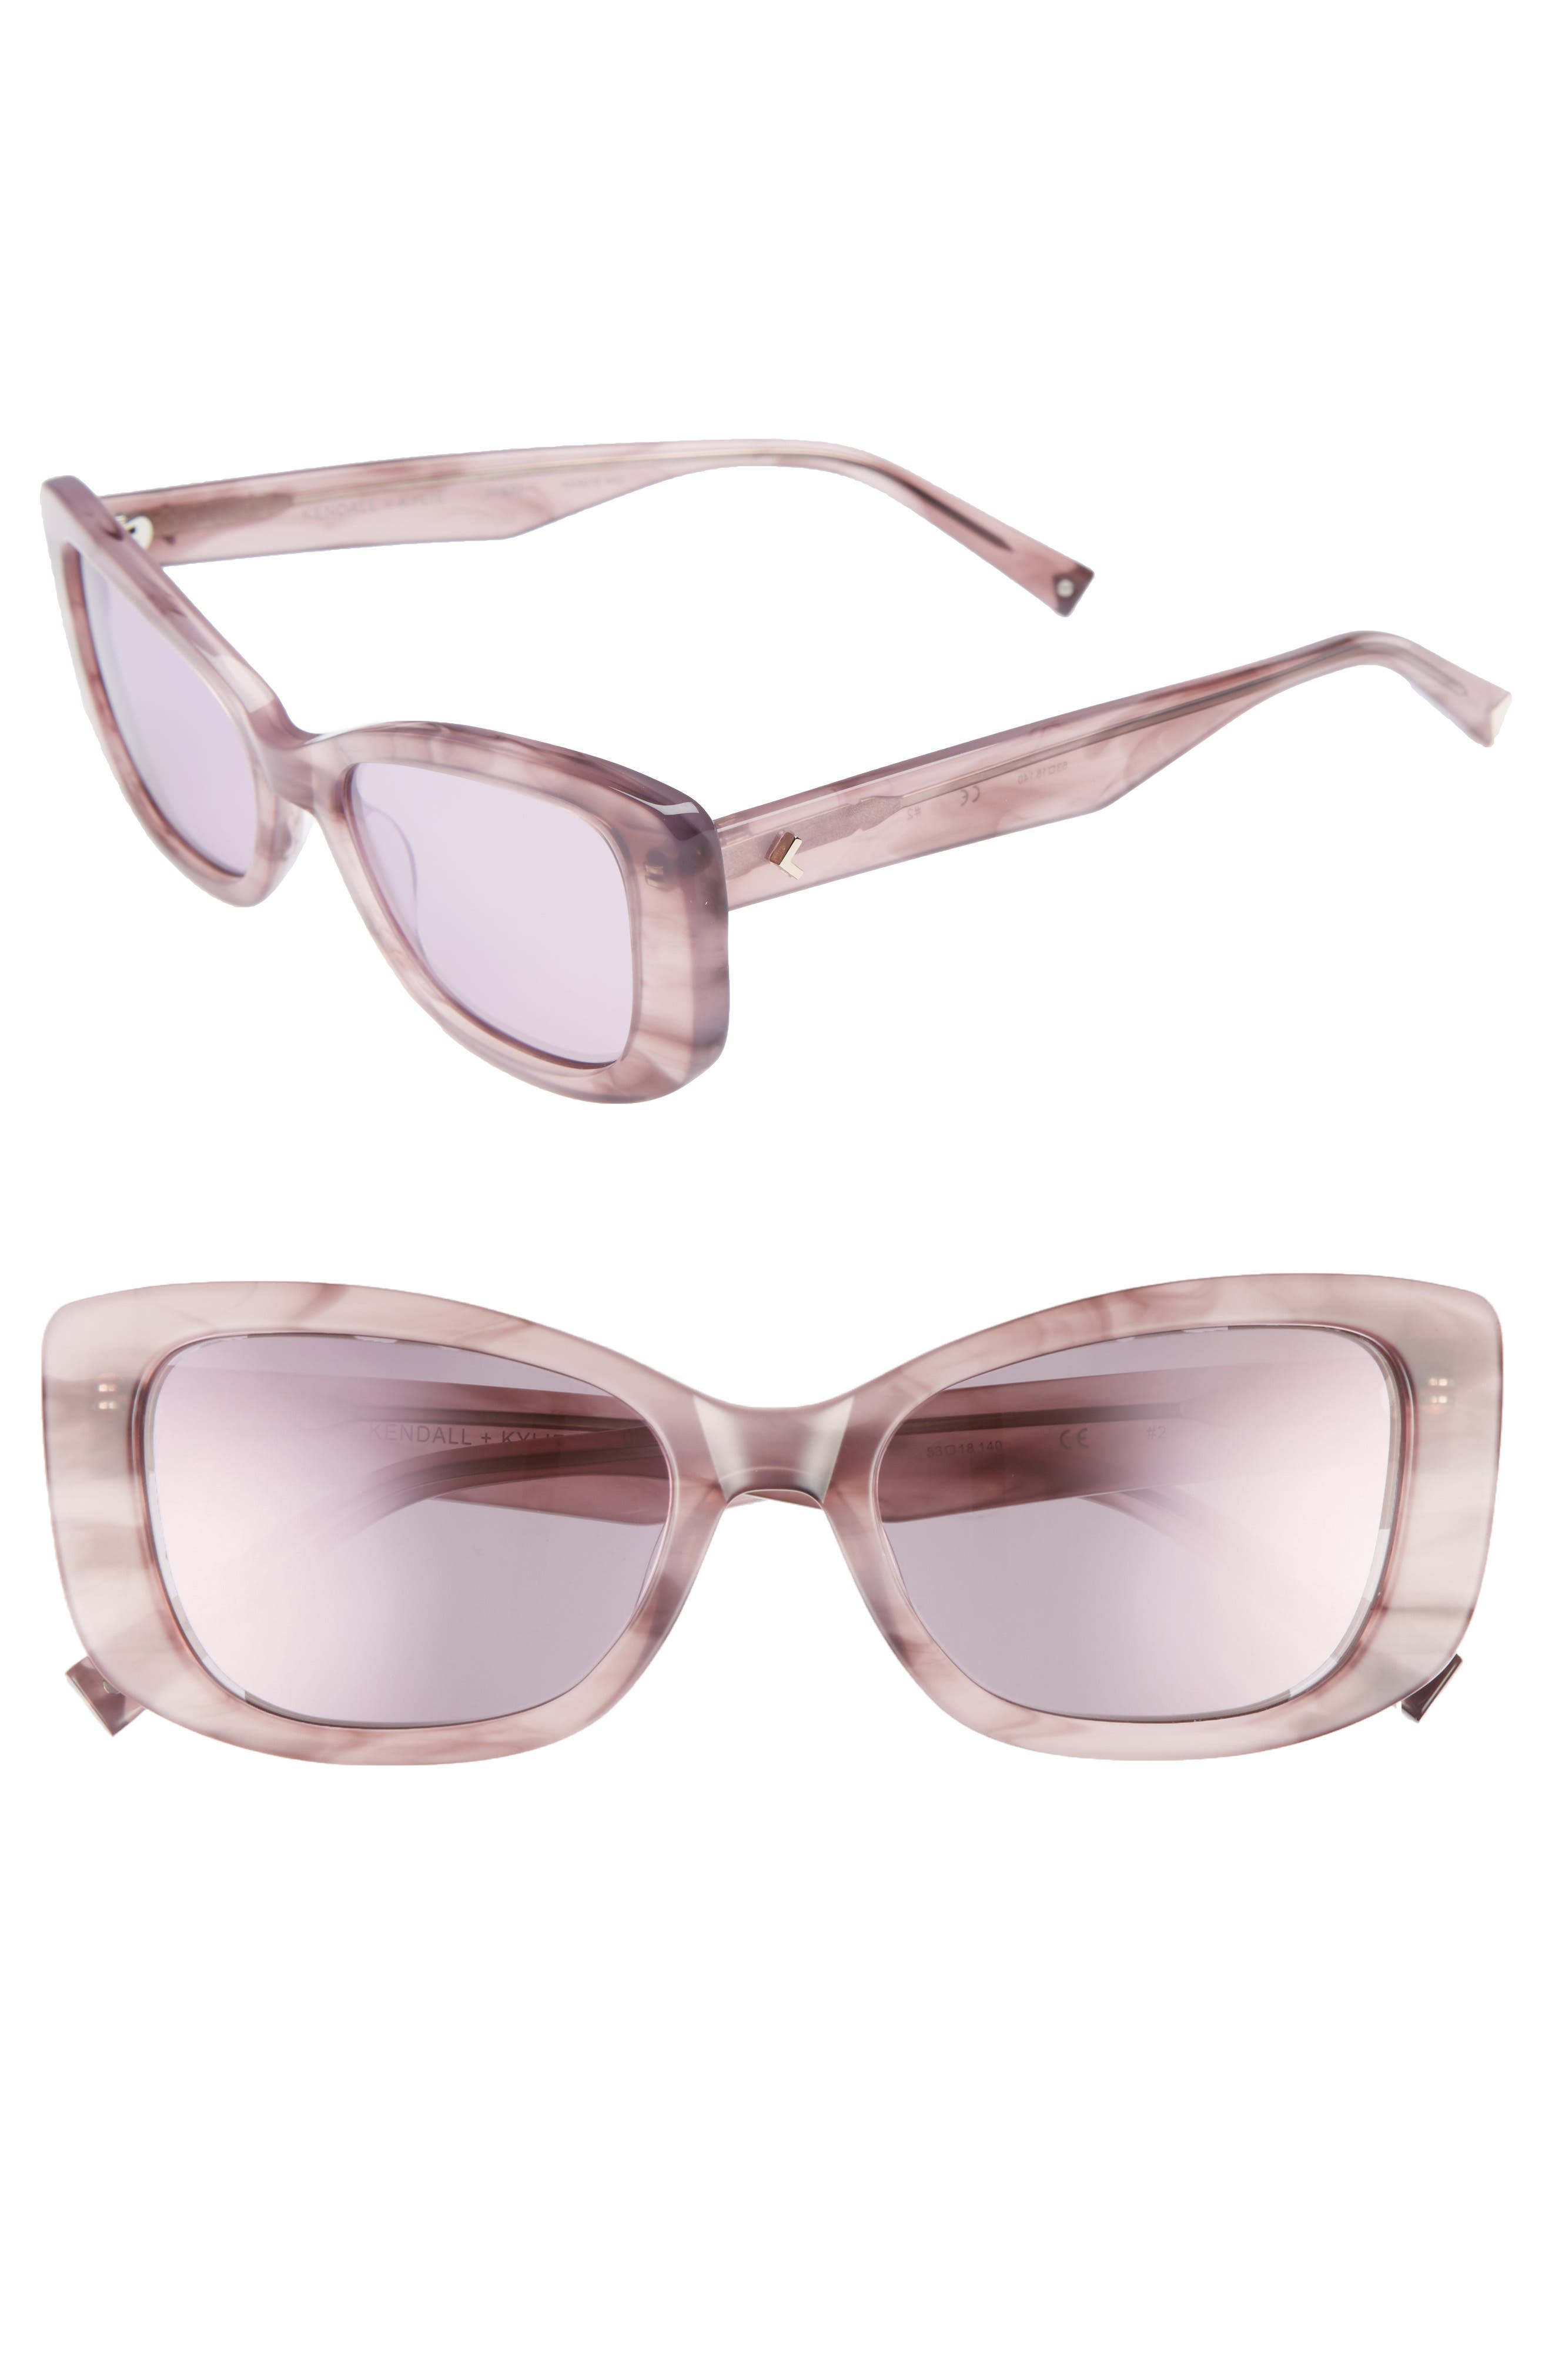 53mm Cat Eye Sunglasses,                         Main,                         color, Rose Horn